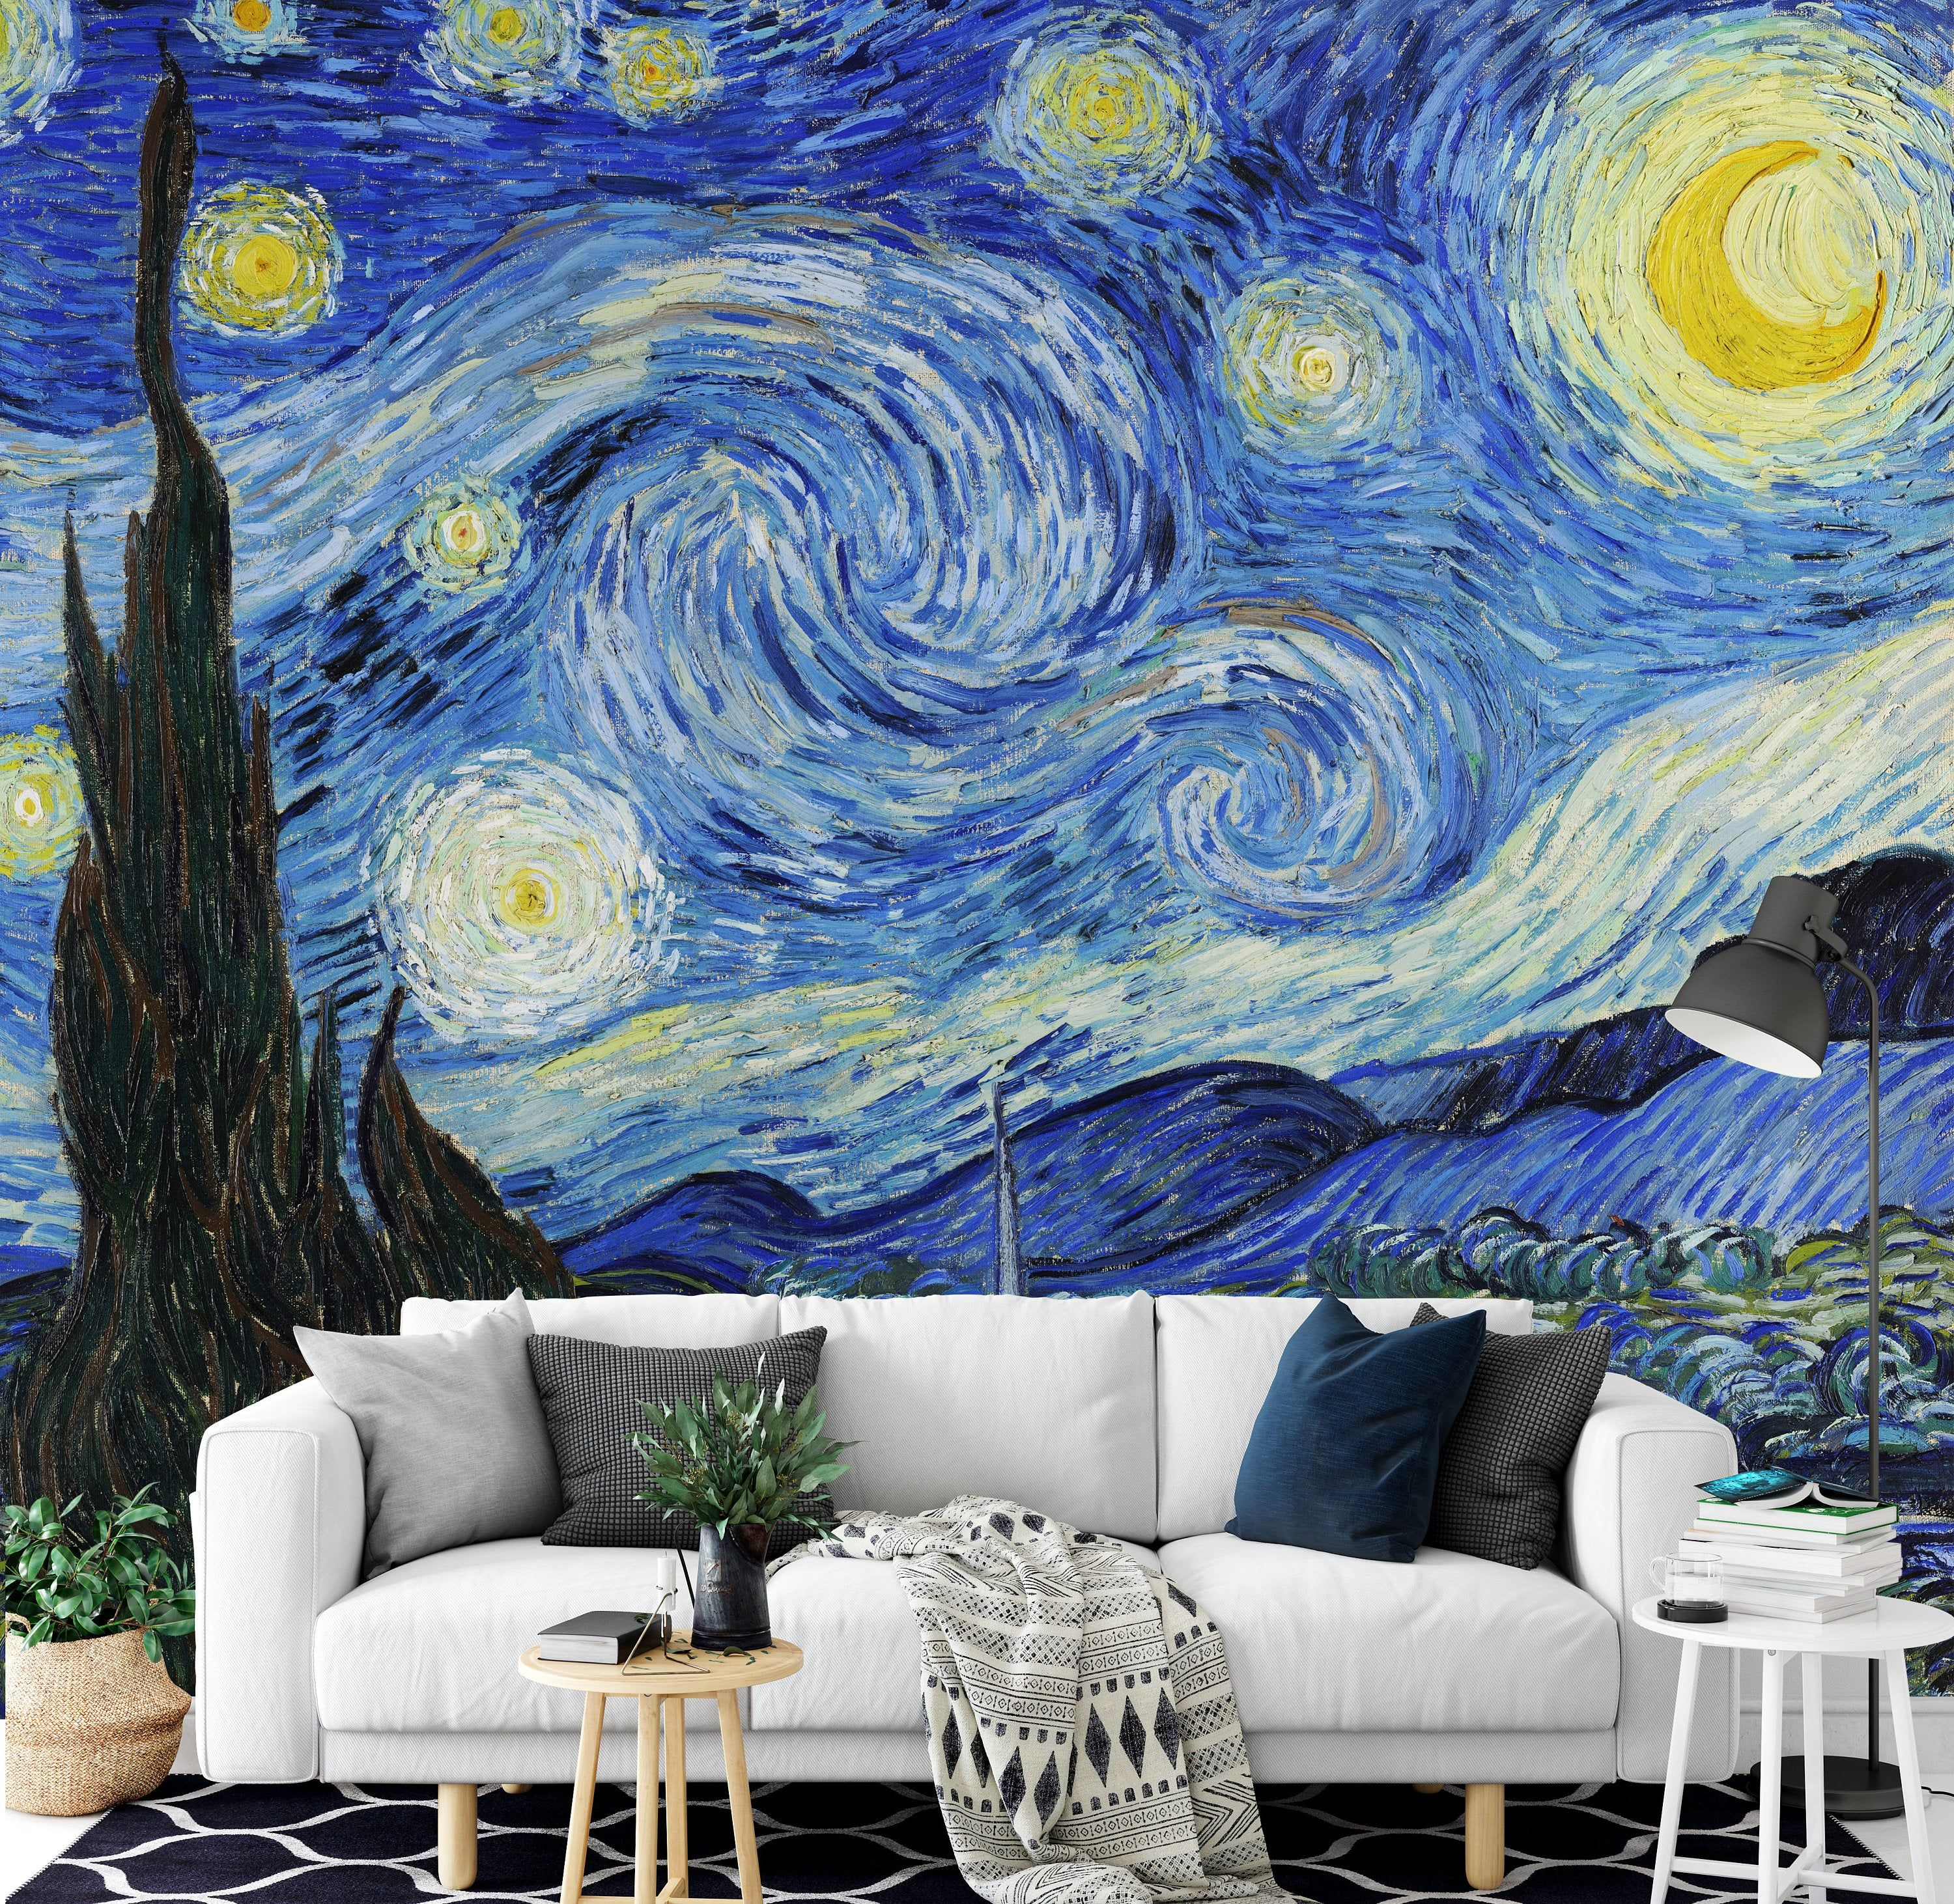 The Starry Night By Vincent Van Gogh Wall Mural Forest Mountain Wallpaper Van Gogh Wallpaper Vintage Oil Painting Wallpaper Vintage Oil Painting Van Gogh Wallpaper Painting Wallpaper